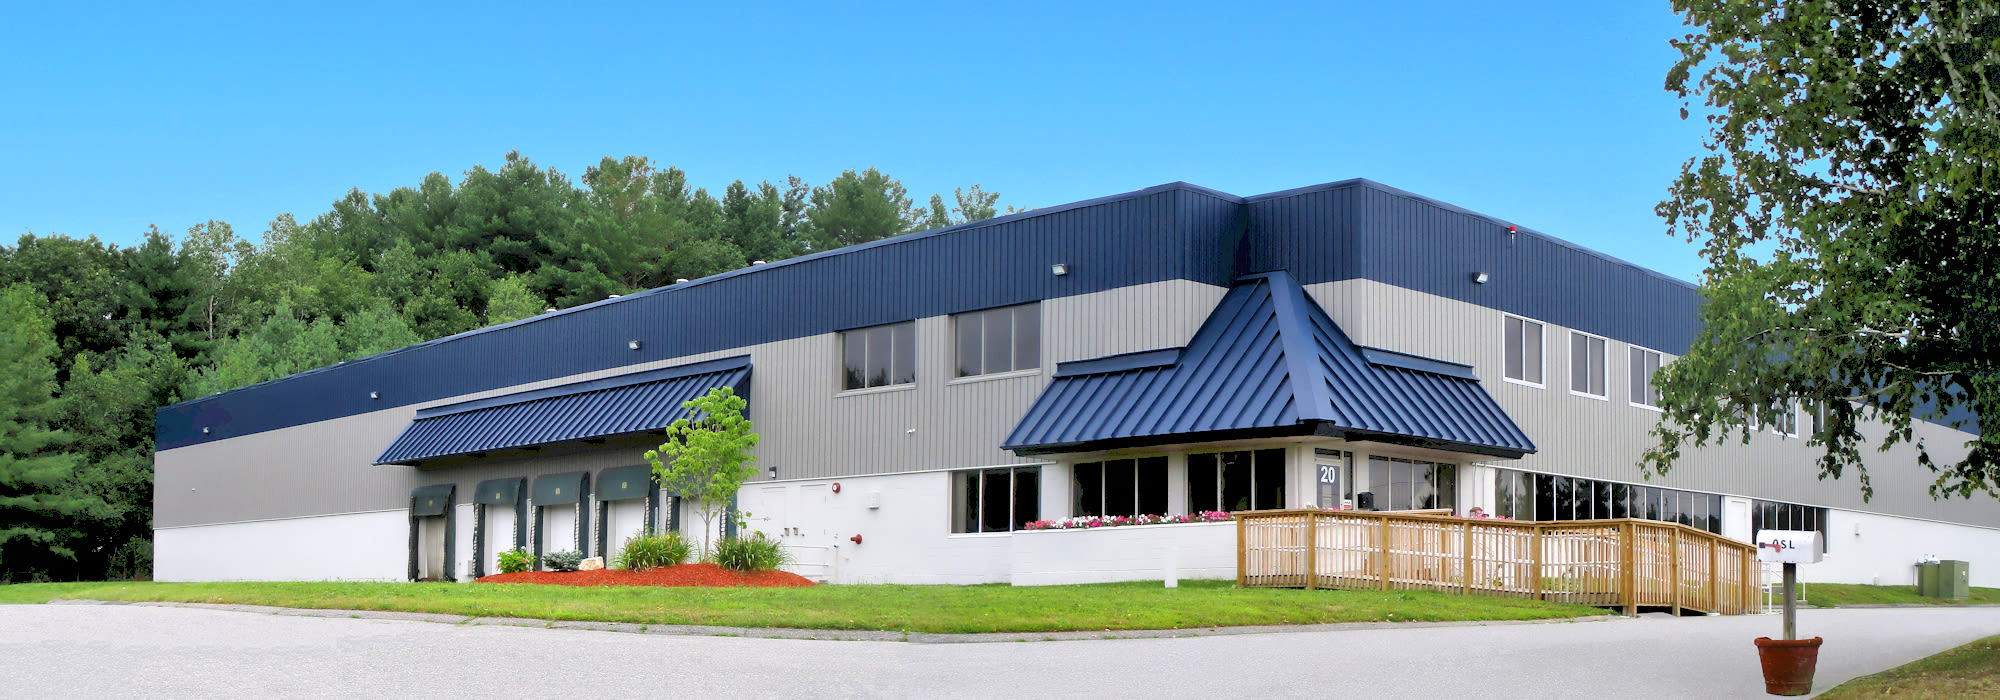 Exceptionnel Prime Storage In Dracut, MA